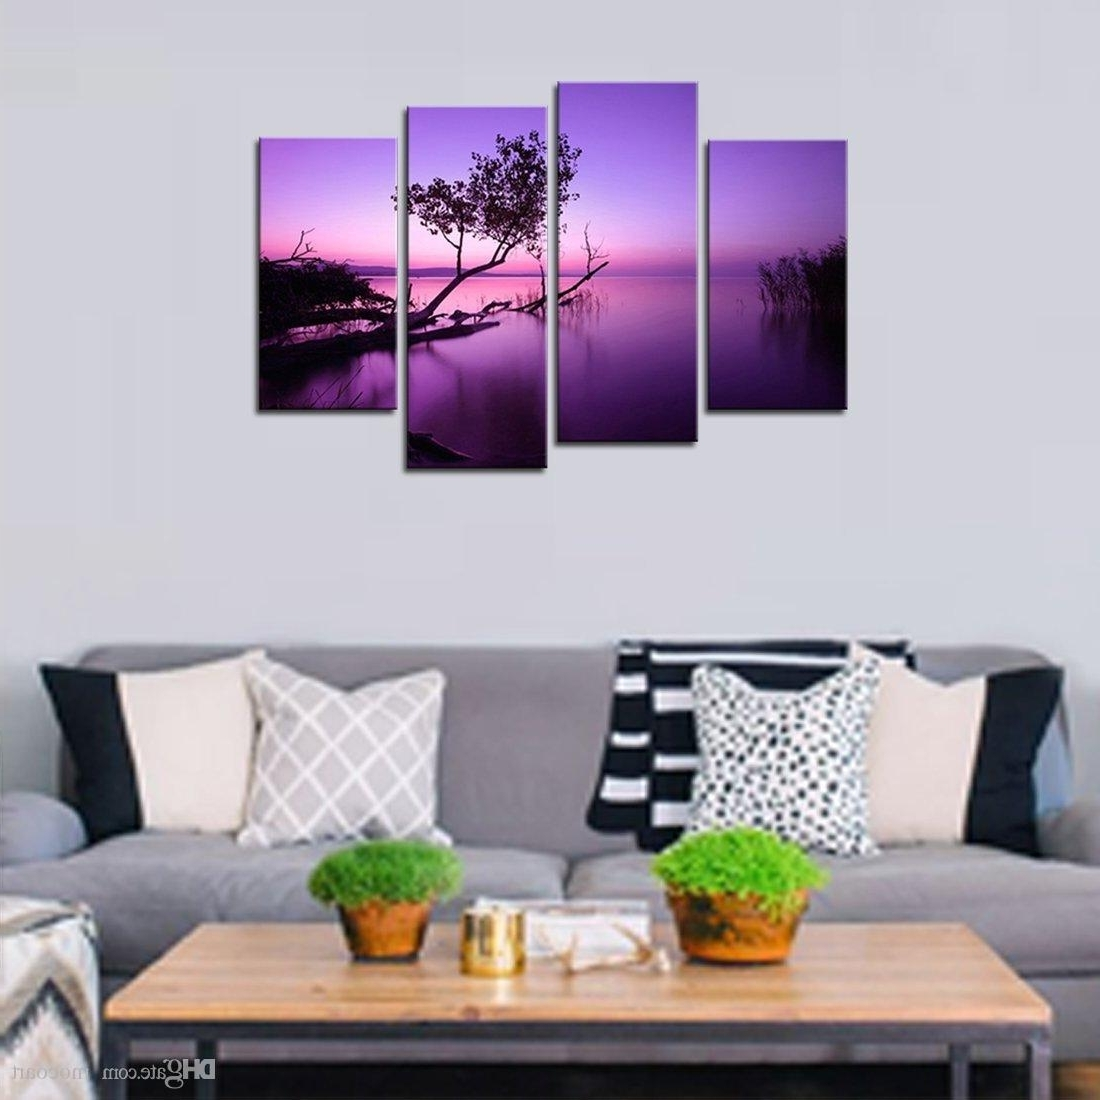 2018 2018 Canvas Wall Art Purple Lake Tree Painting Picture Landscape Intended For Canvas Wall Art In Purple (View 2 of 15)